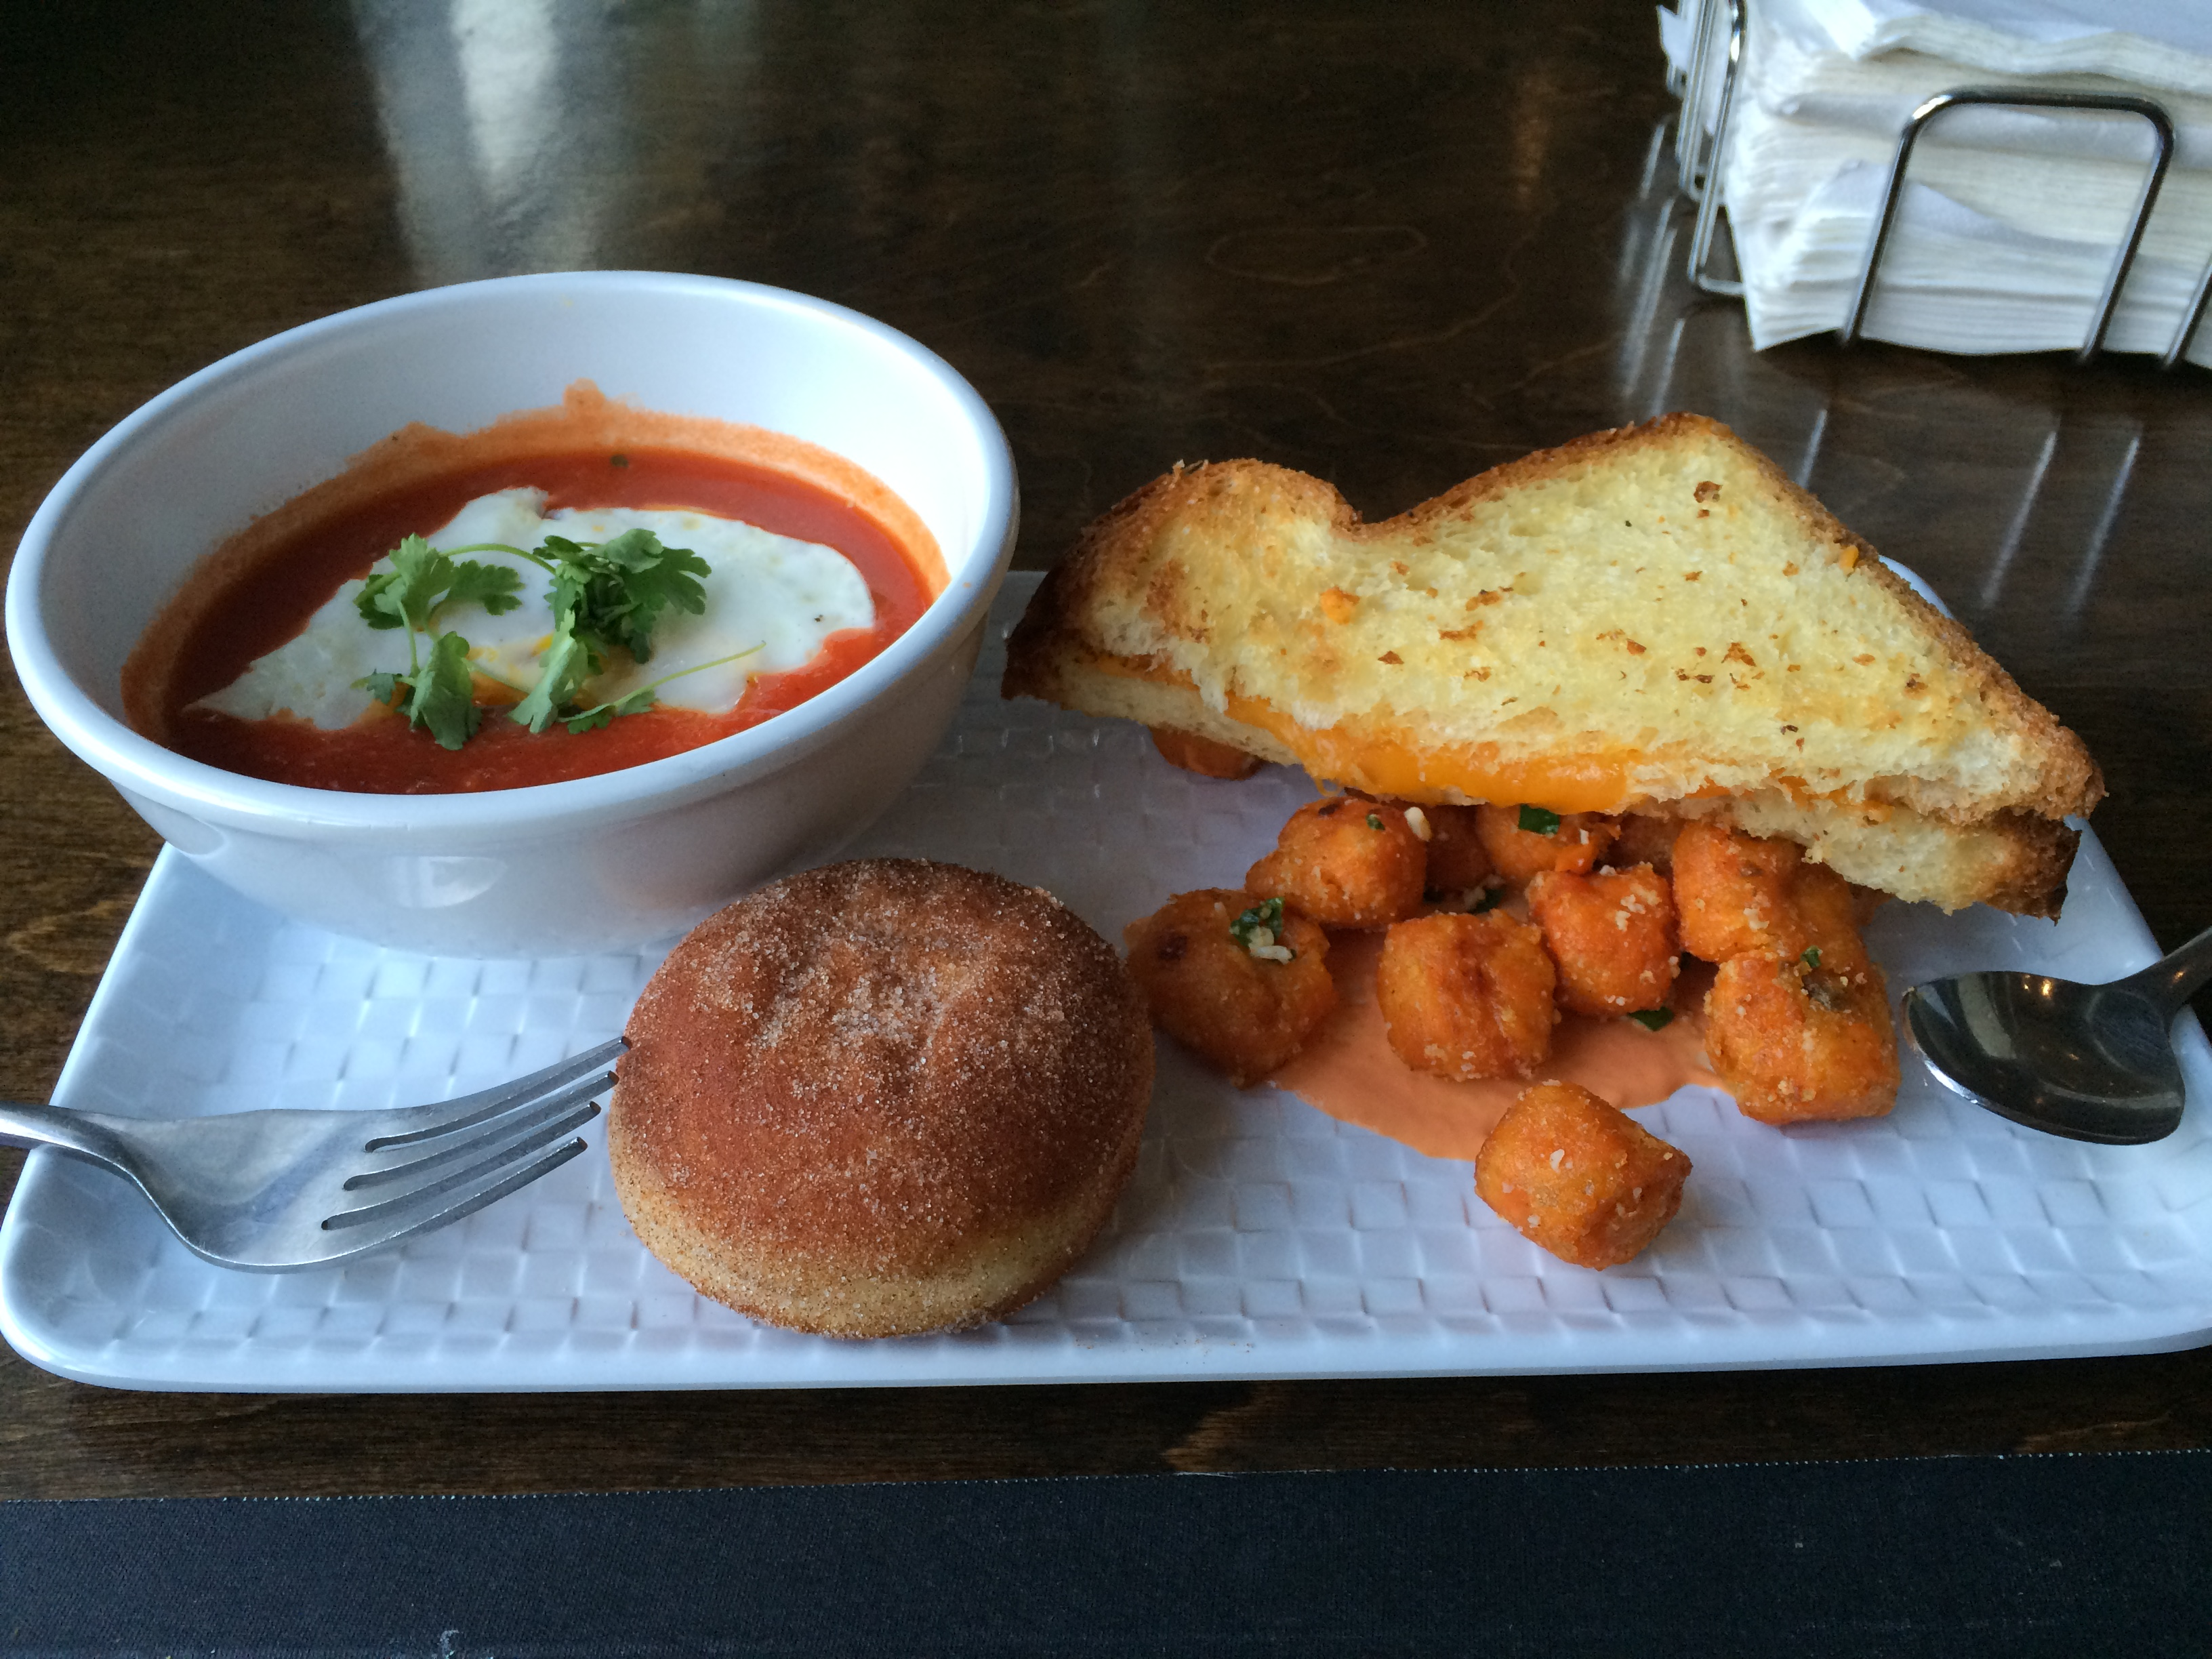 Grilled cheese with tomato soup and sweet potato tots